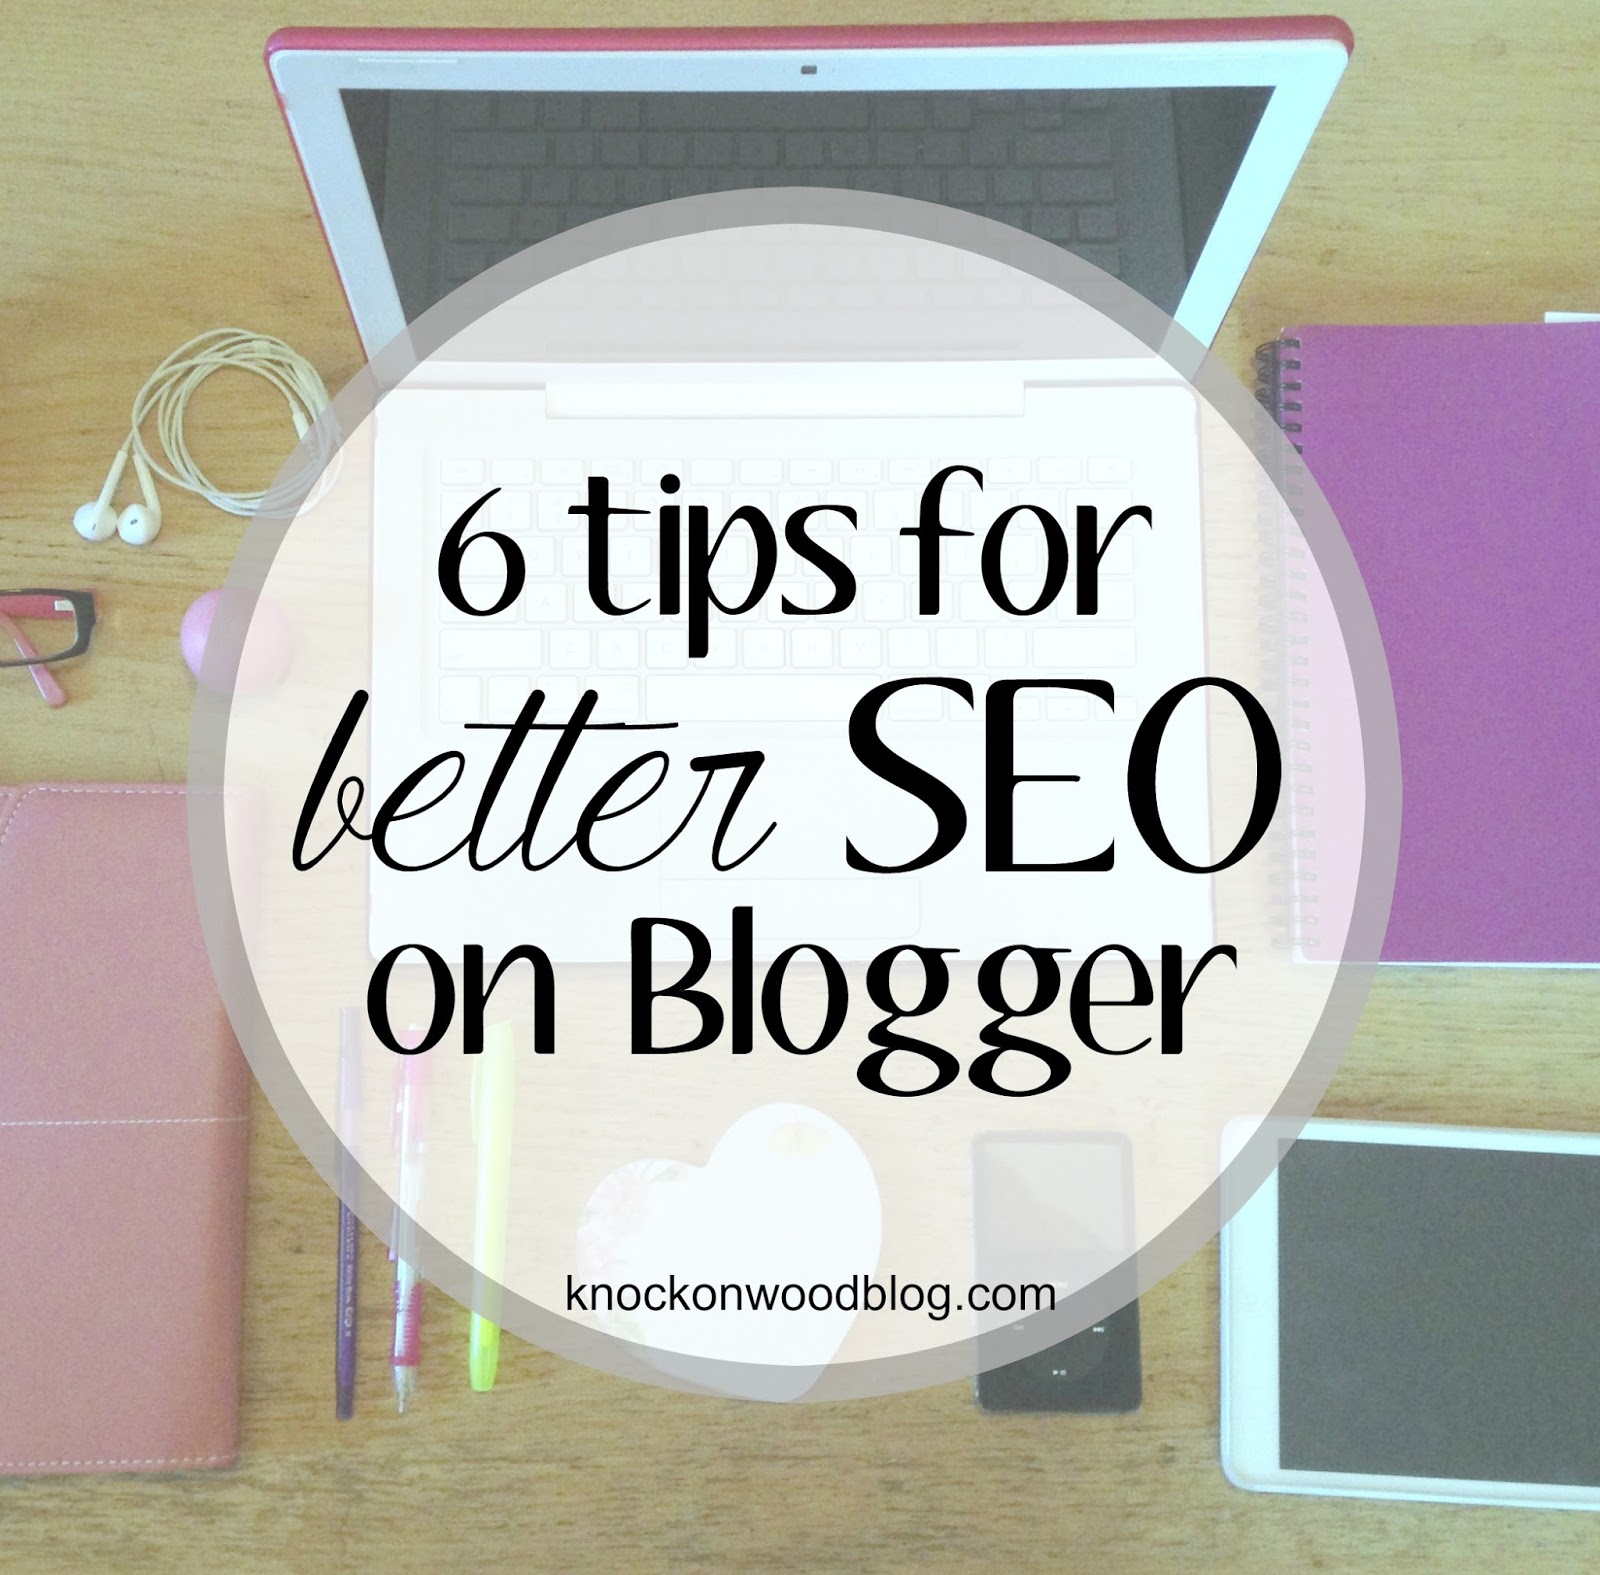 6 Tips for Better SEO on Blogger